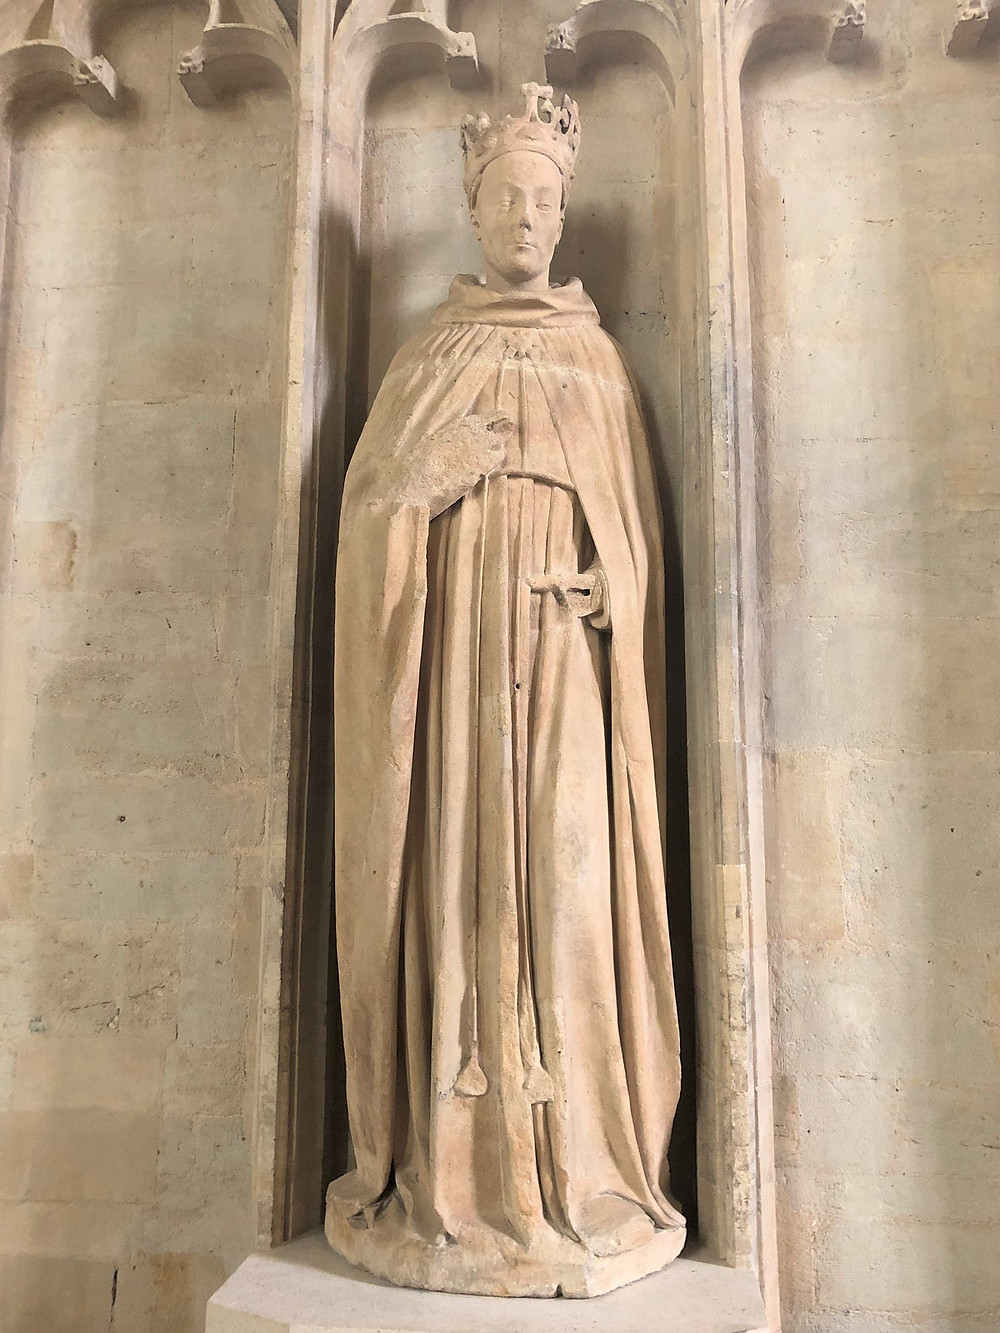 A life size statue of Henry VI in the Chapel at All Souls College in Oxford, England